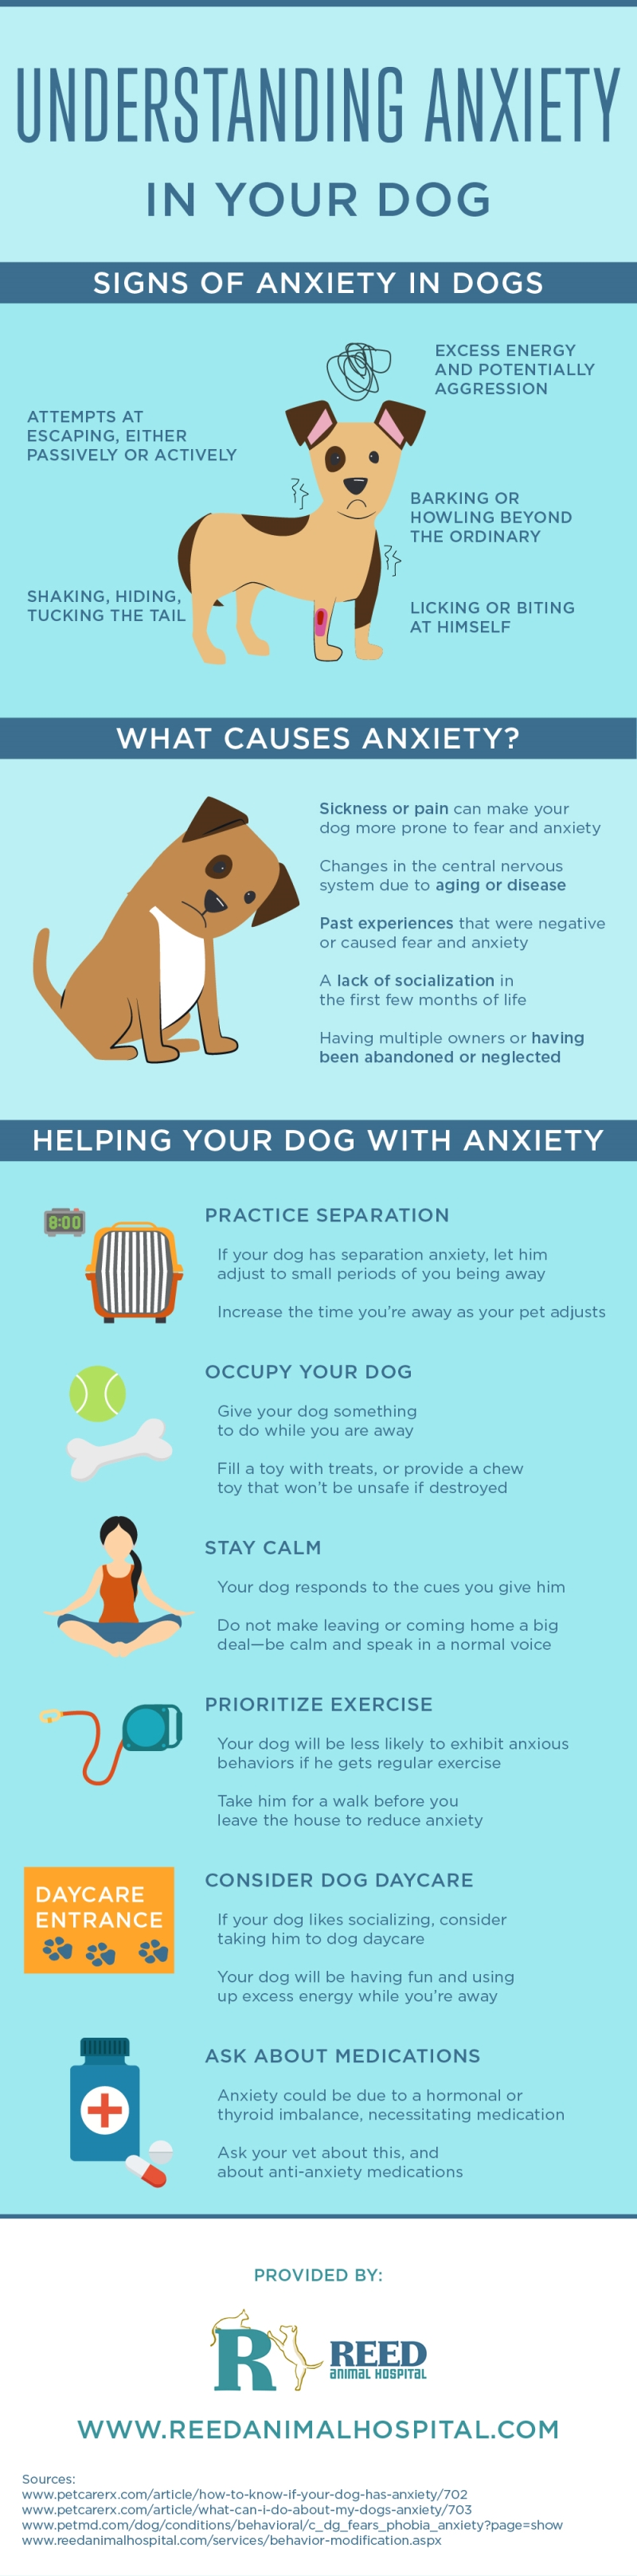 an infographic showing relevant information on dog anxiety